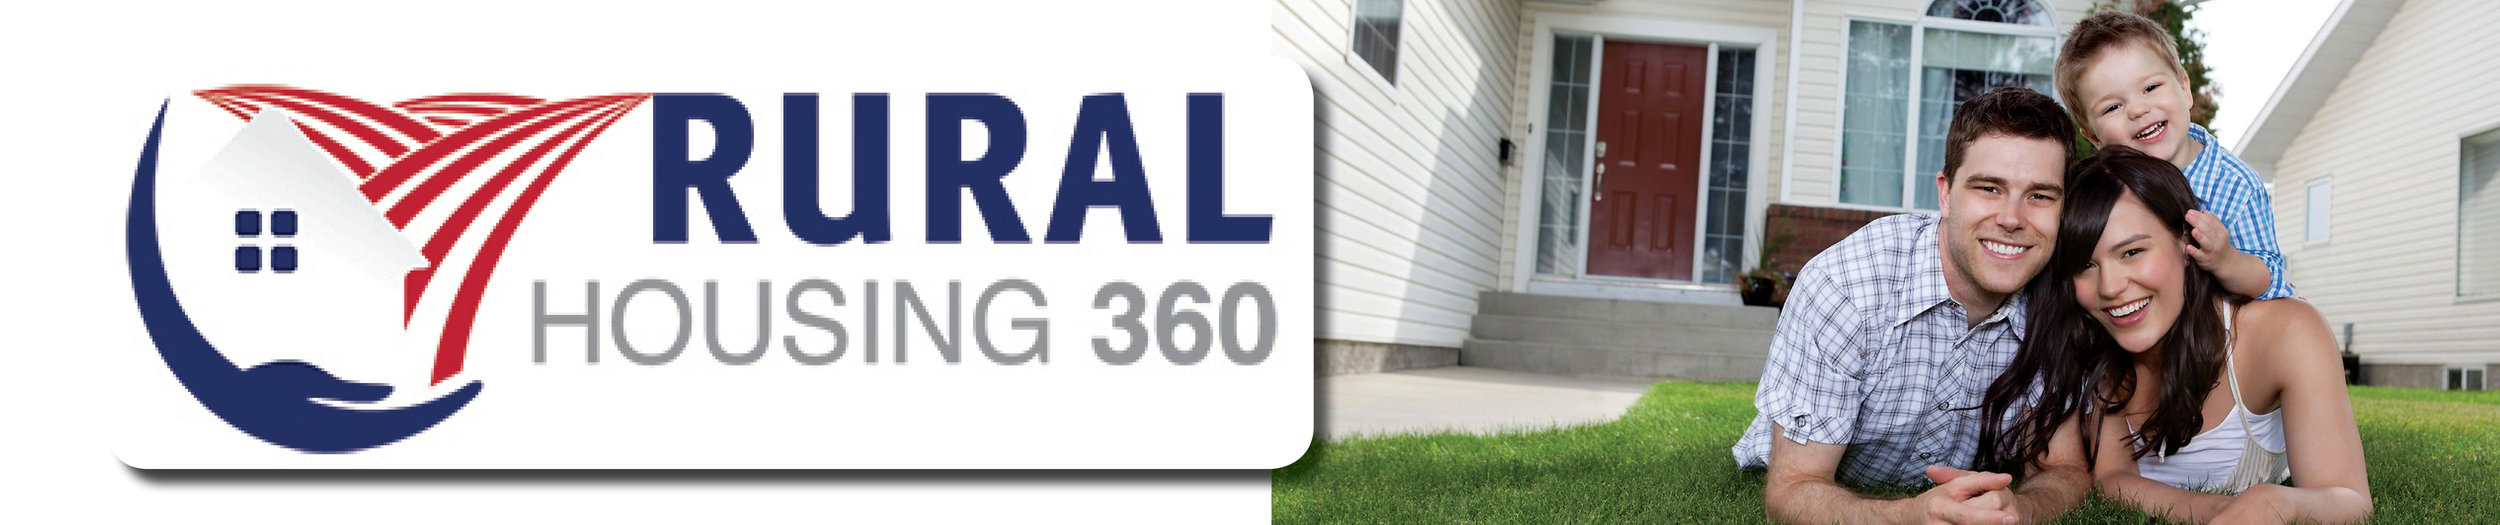 FMTC Rural Housing 360 Web Graphic - 6-19.jpg